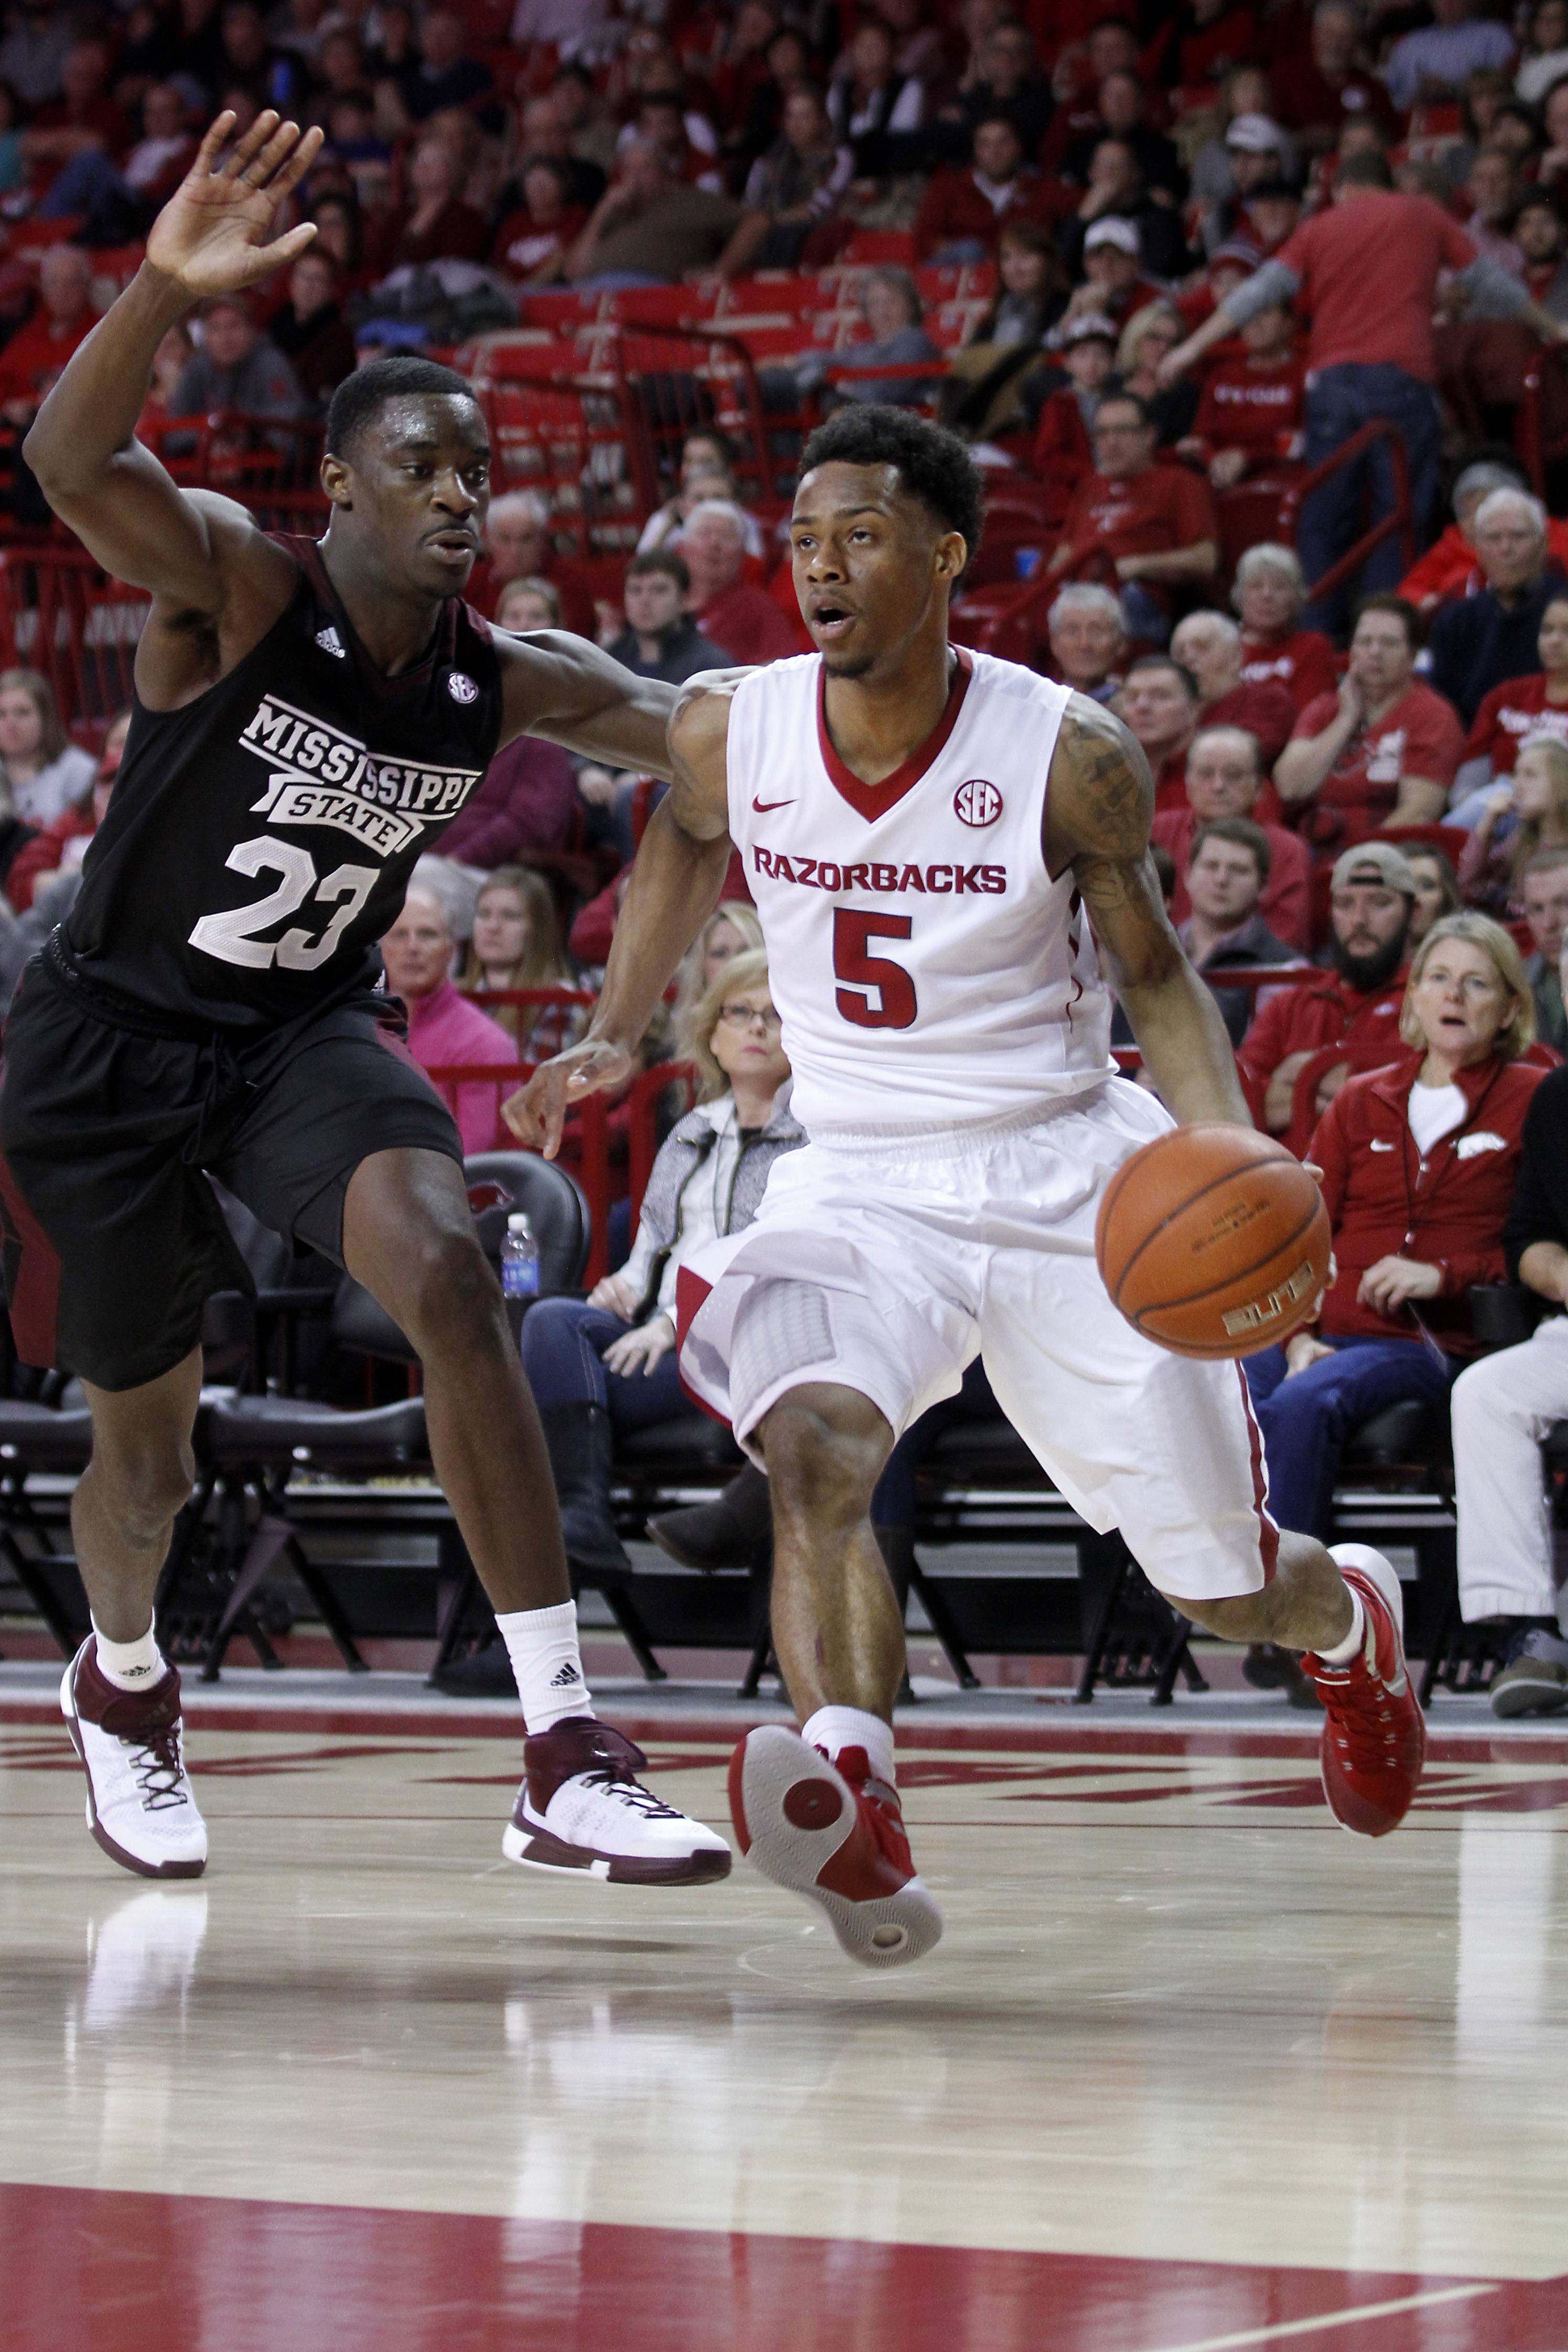 Arkansas' Anthlon Bell (5) looks to drive around Mississippi State's Travis Daniels (23) during the first half of an NCAA college basketball game Saturday, Jan. 9, 2016, in Fayetteville, Ark. (AP Photo/Samantha Baker)